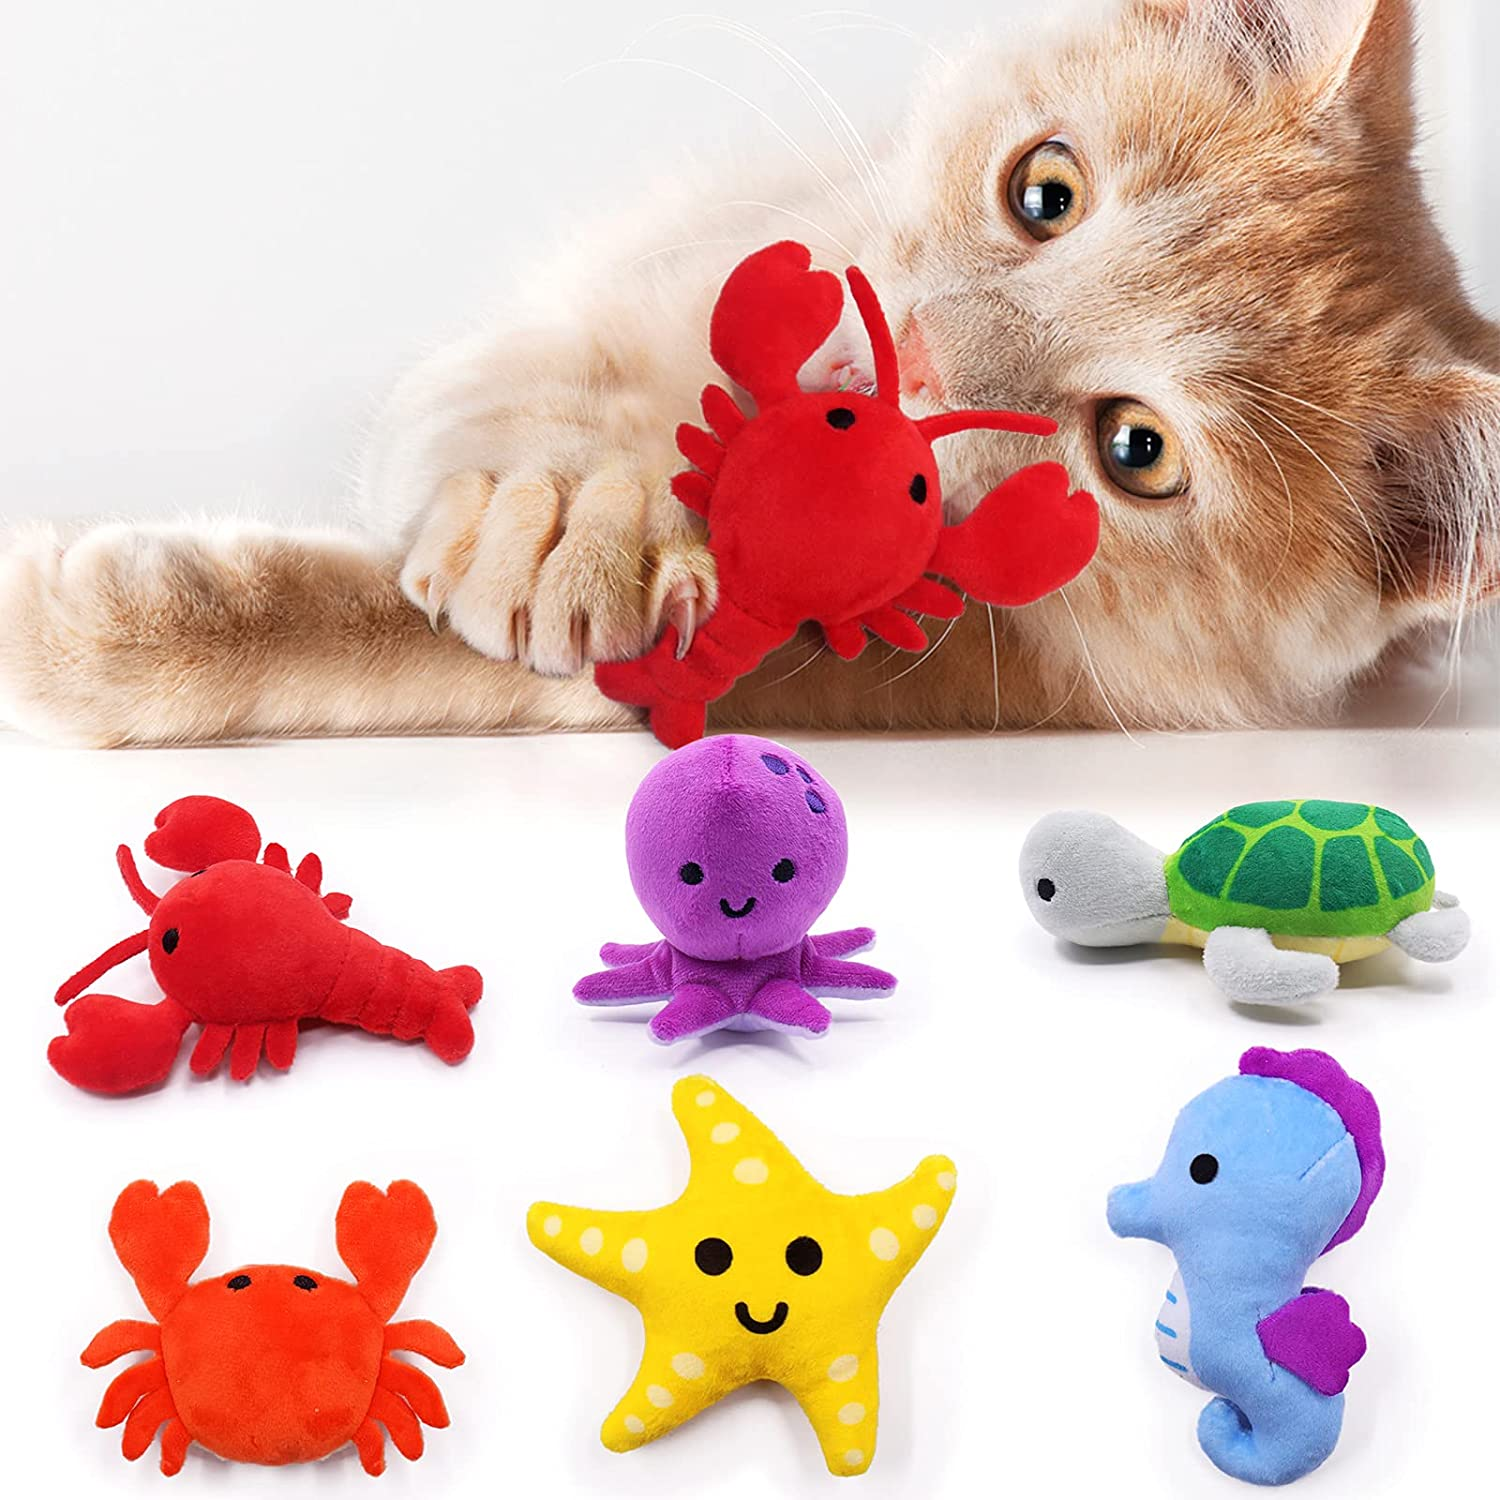 Sea Animals Catnip Toys Seafood Kitten Interactive Toys for Cat Lovers Gifts Kitty Chew Bite Kick Toys Supplies Lobster Octopus Crab Starfish Seahorse Sea Turtle Plush Catmint Pet Presents Set of 6